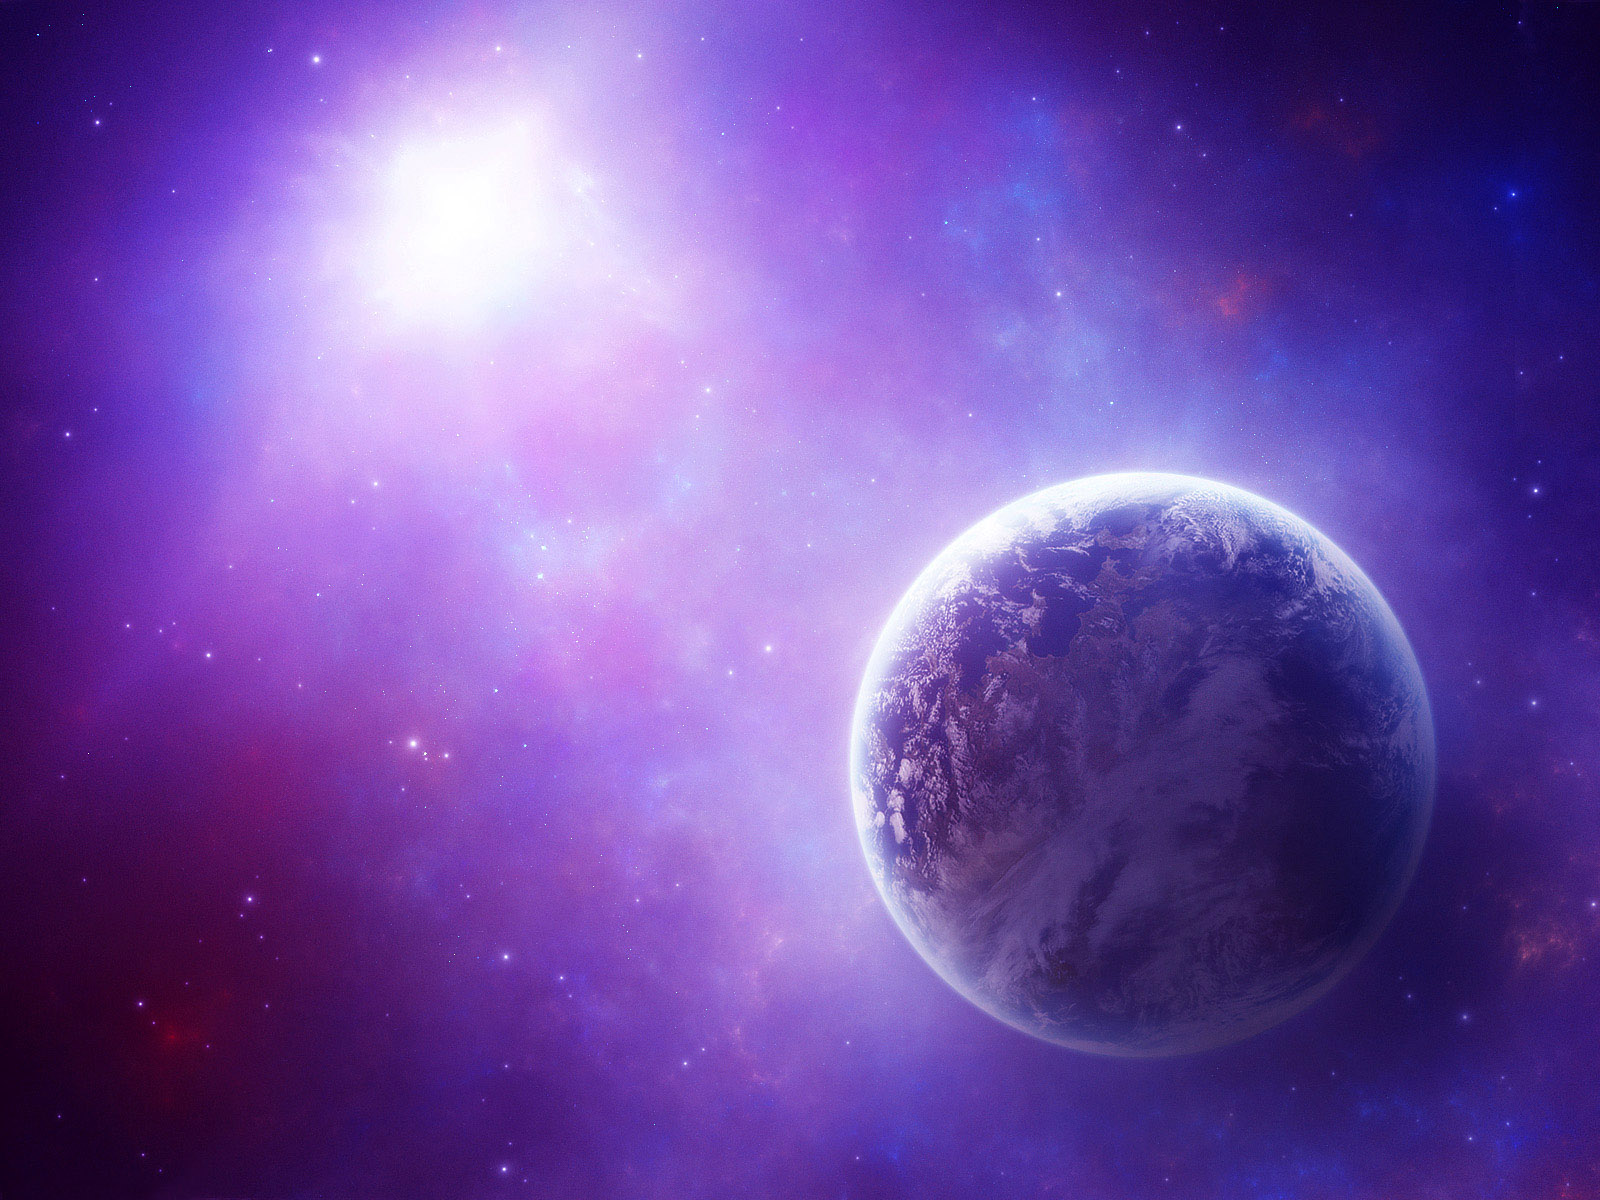 Universe Artistic Wallpapers HD 1600x Photo 34 of 54 1600x1200